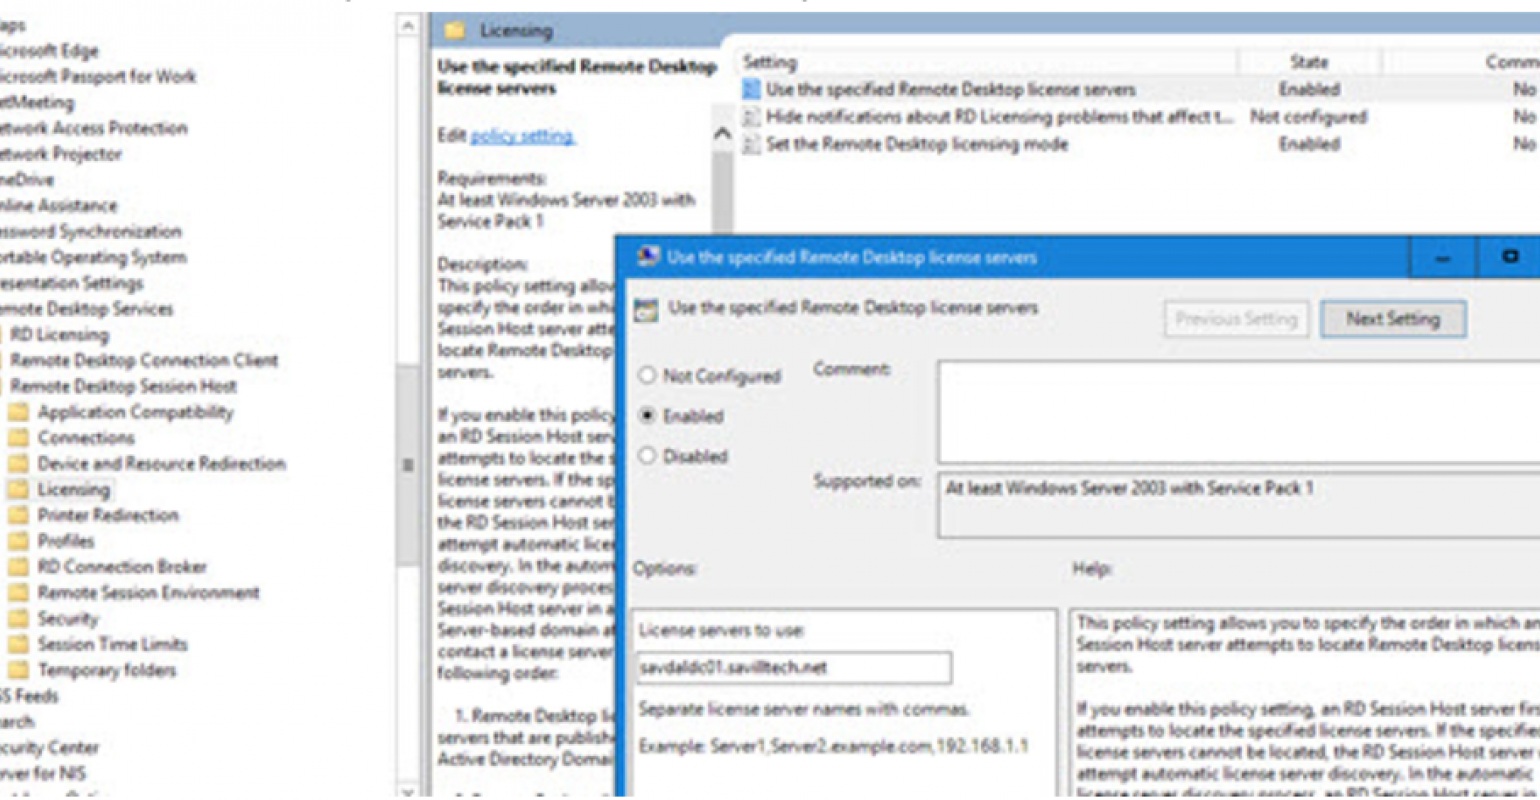 Configure RD Licensing Server via group policy | IT Pro